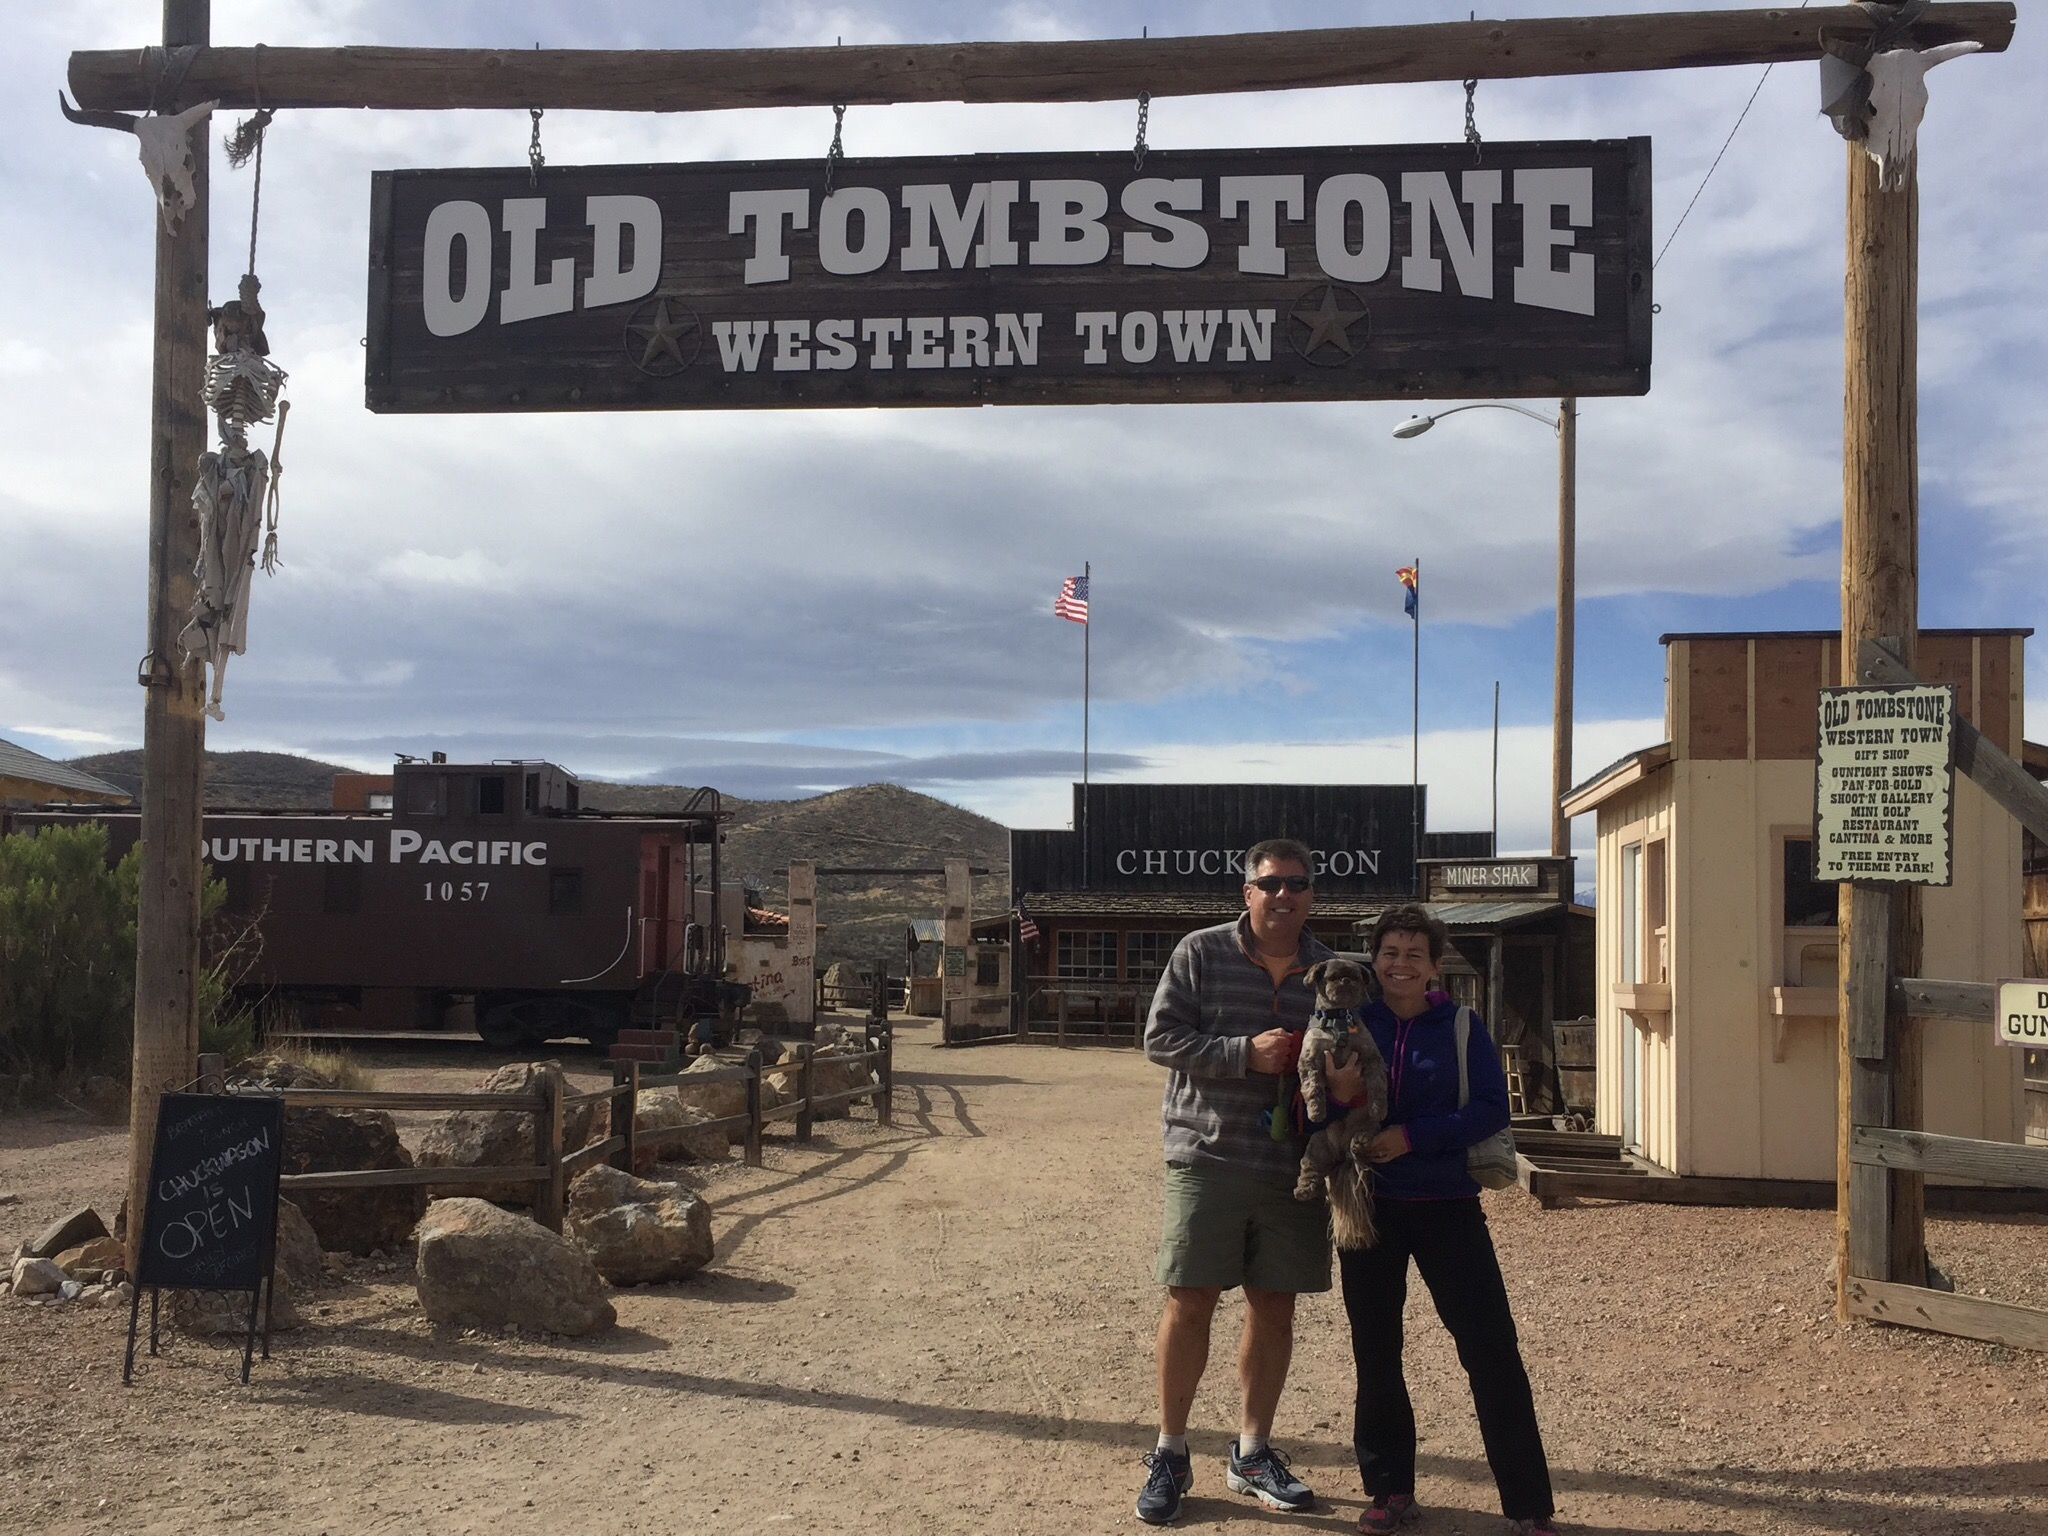 Tombstone arizona gizmogoeswest it was a windy day and this only added to the ambience of the town the wind was whipping up the old dirt main street and made it feel like we walking publicscrutiny Image collections